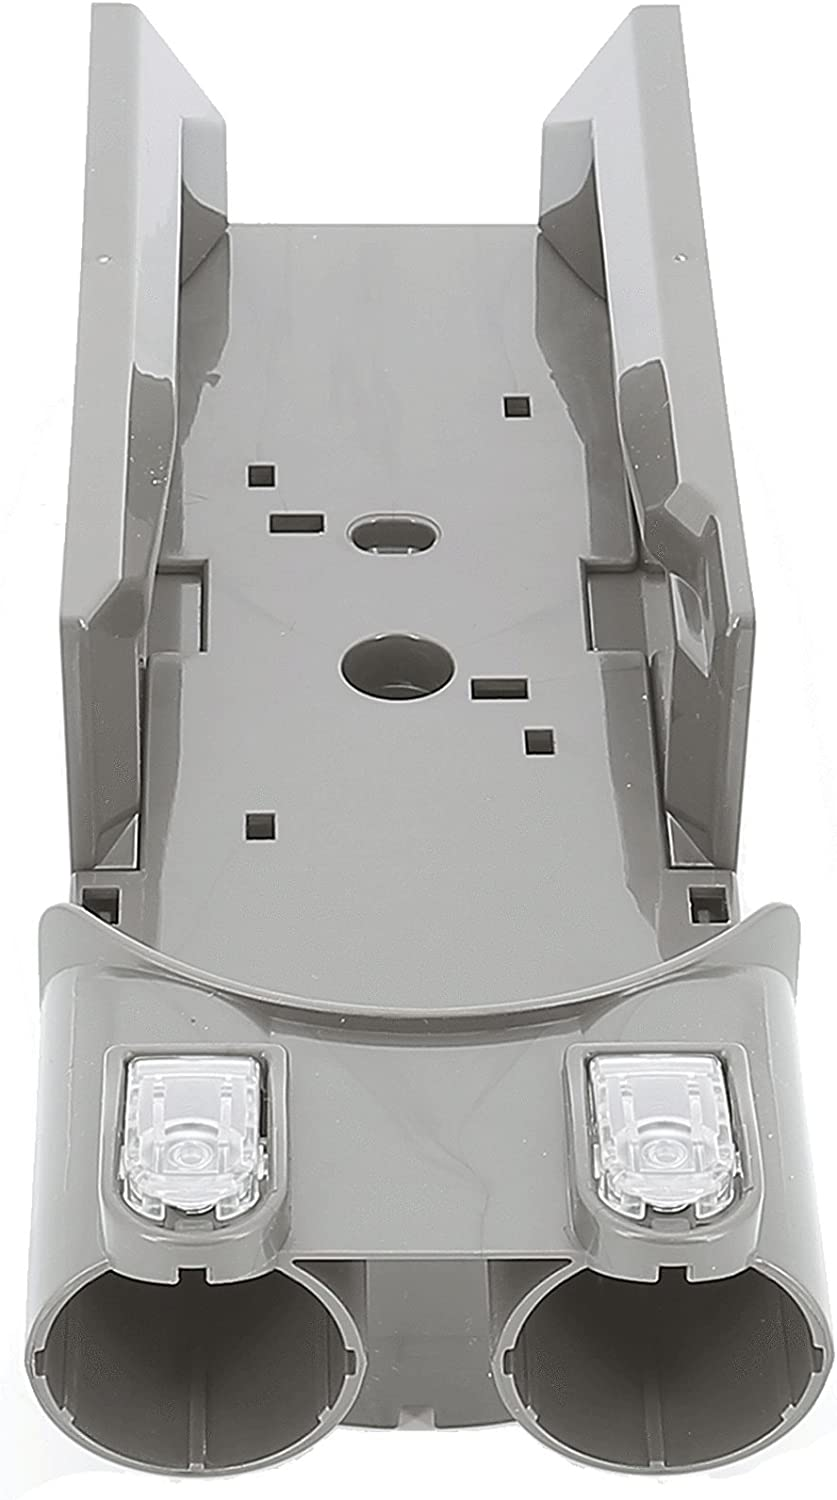 4YourHome Wall Docking Station Designed to Fit Dyson DC58 DC59 DC61 DC62 Replaces OEM# 965876-01